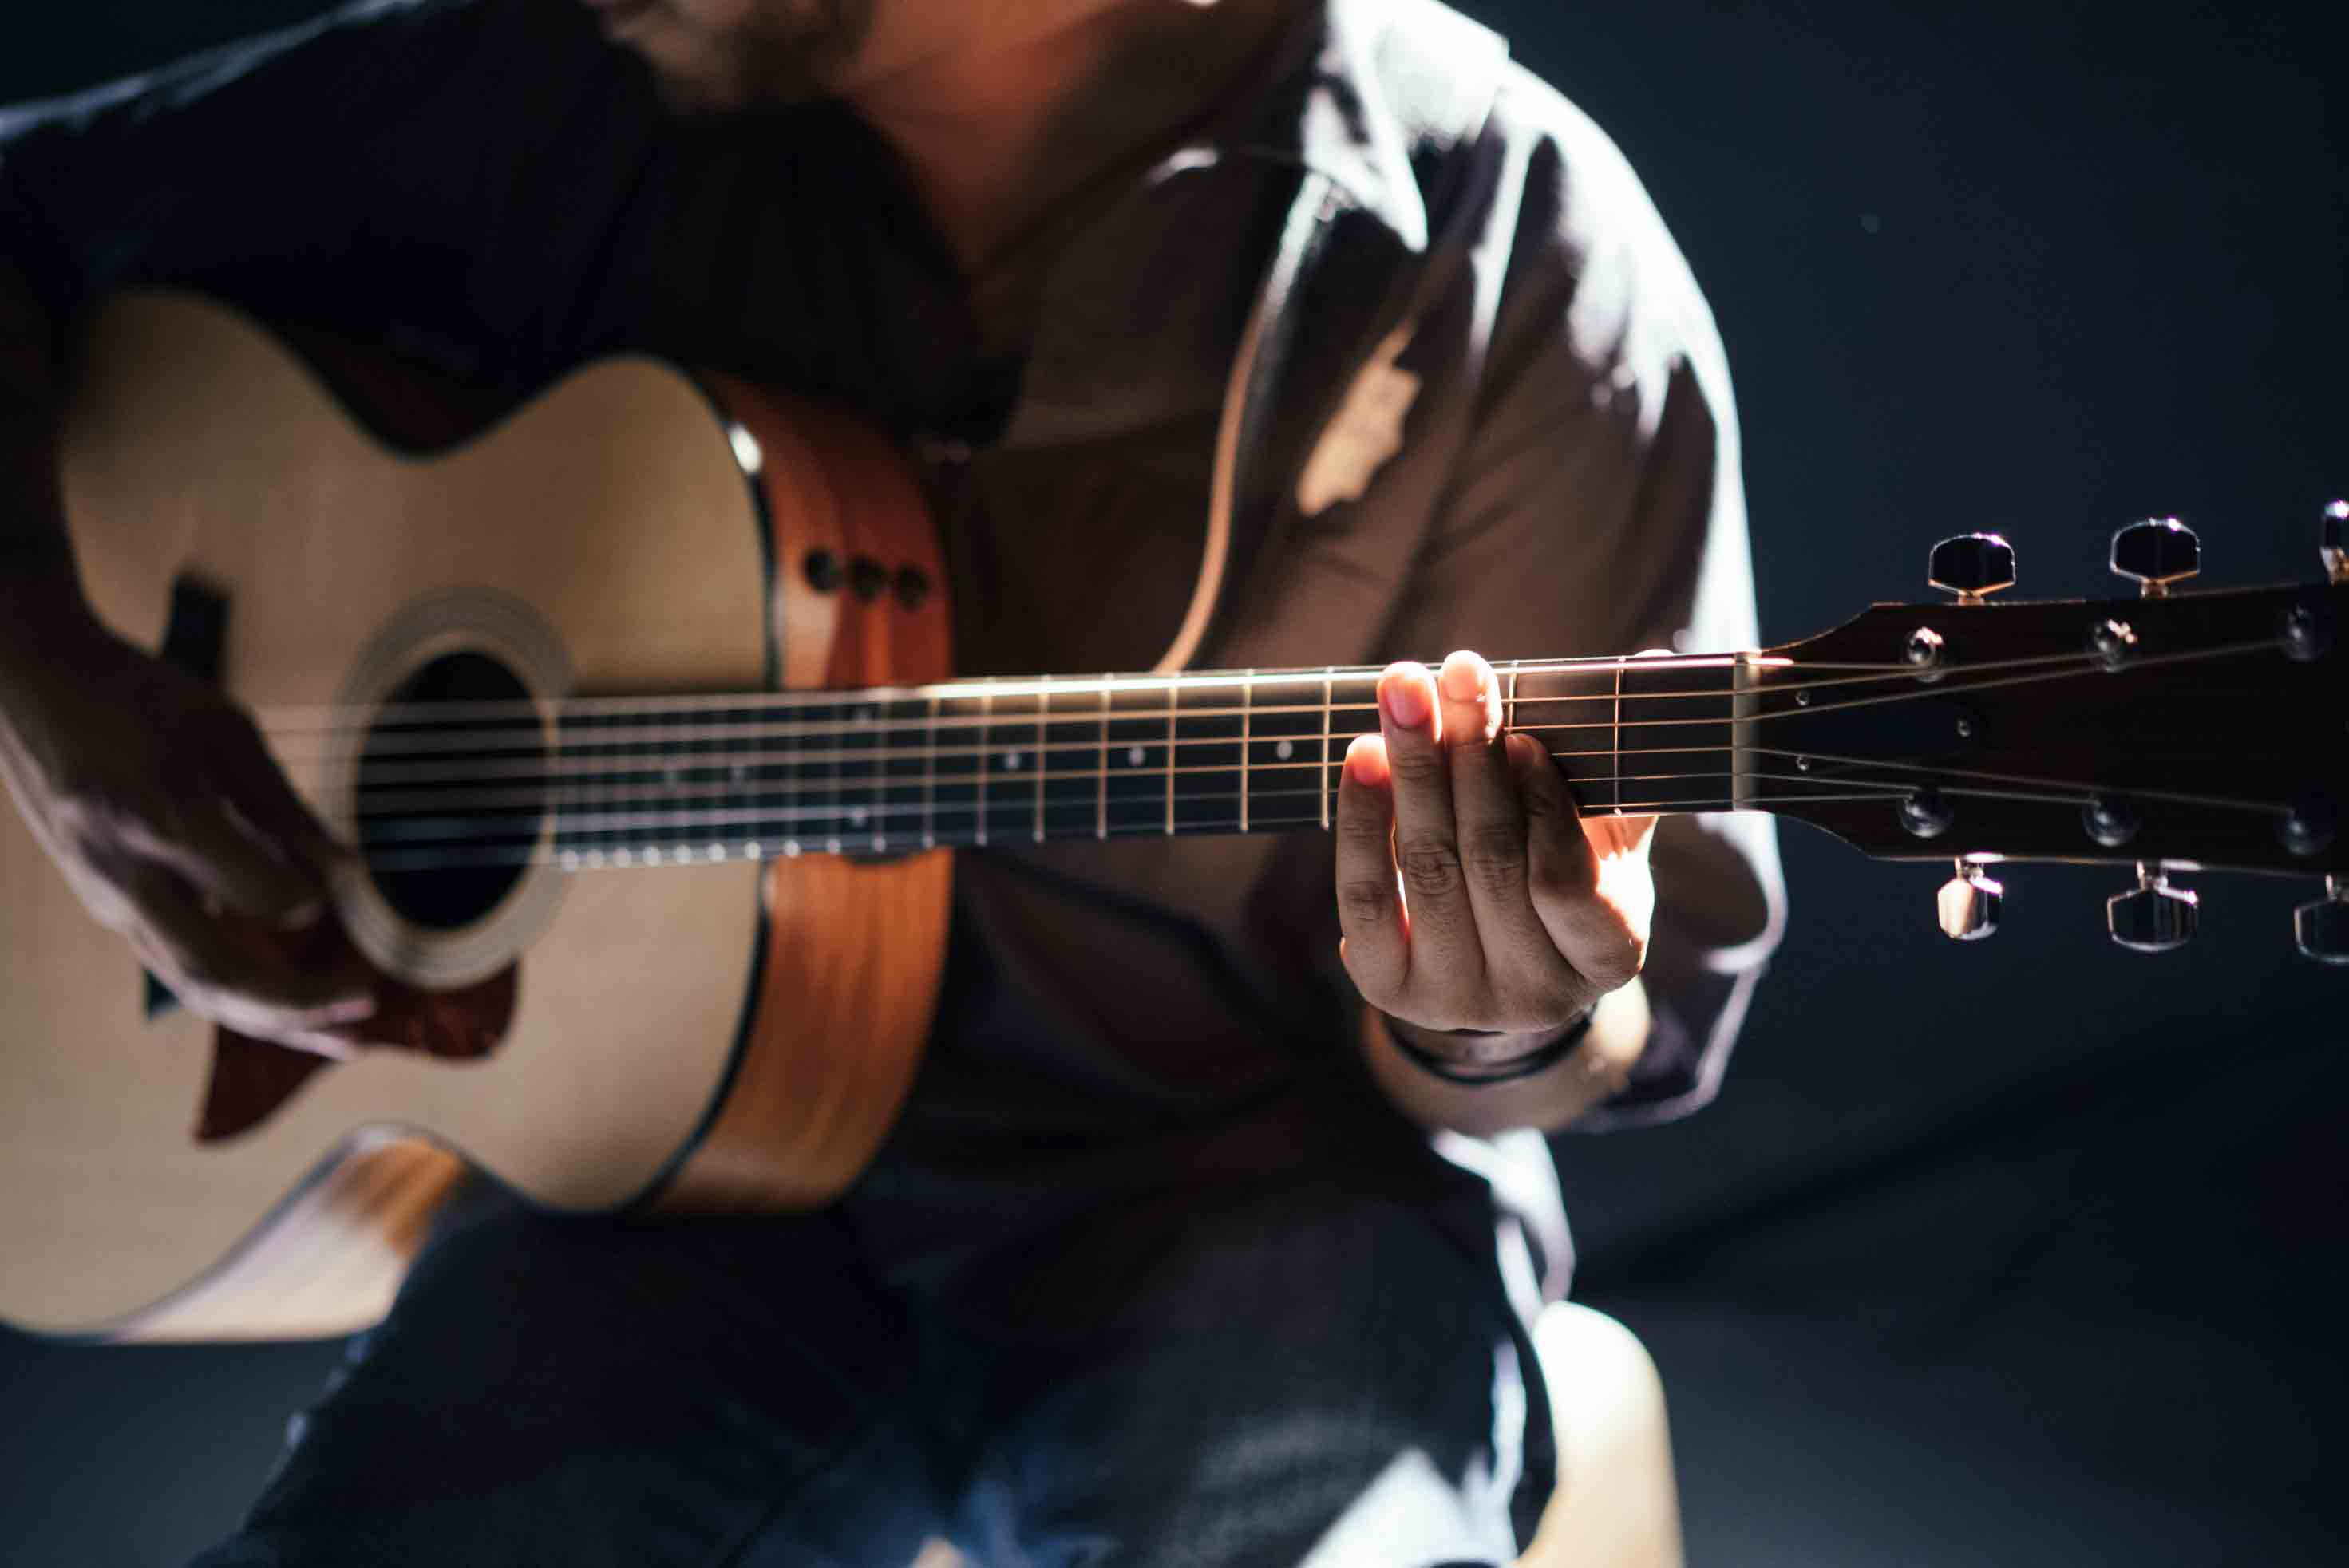 5 Ways To Relax While You Play Guitar